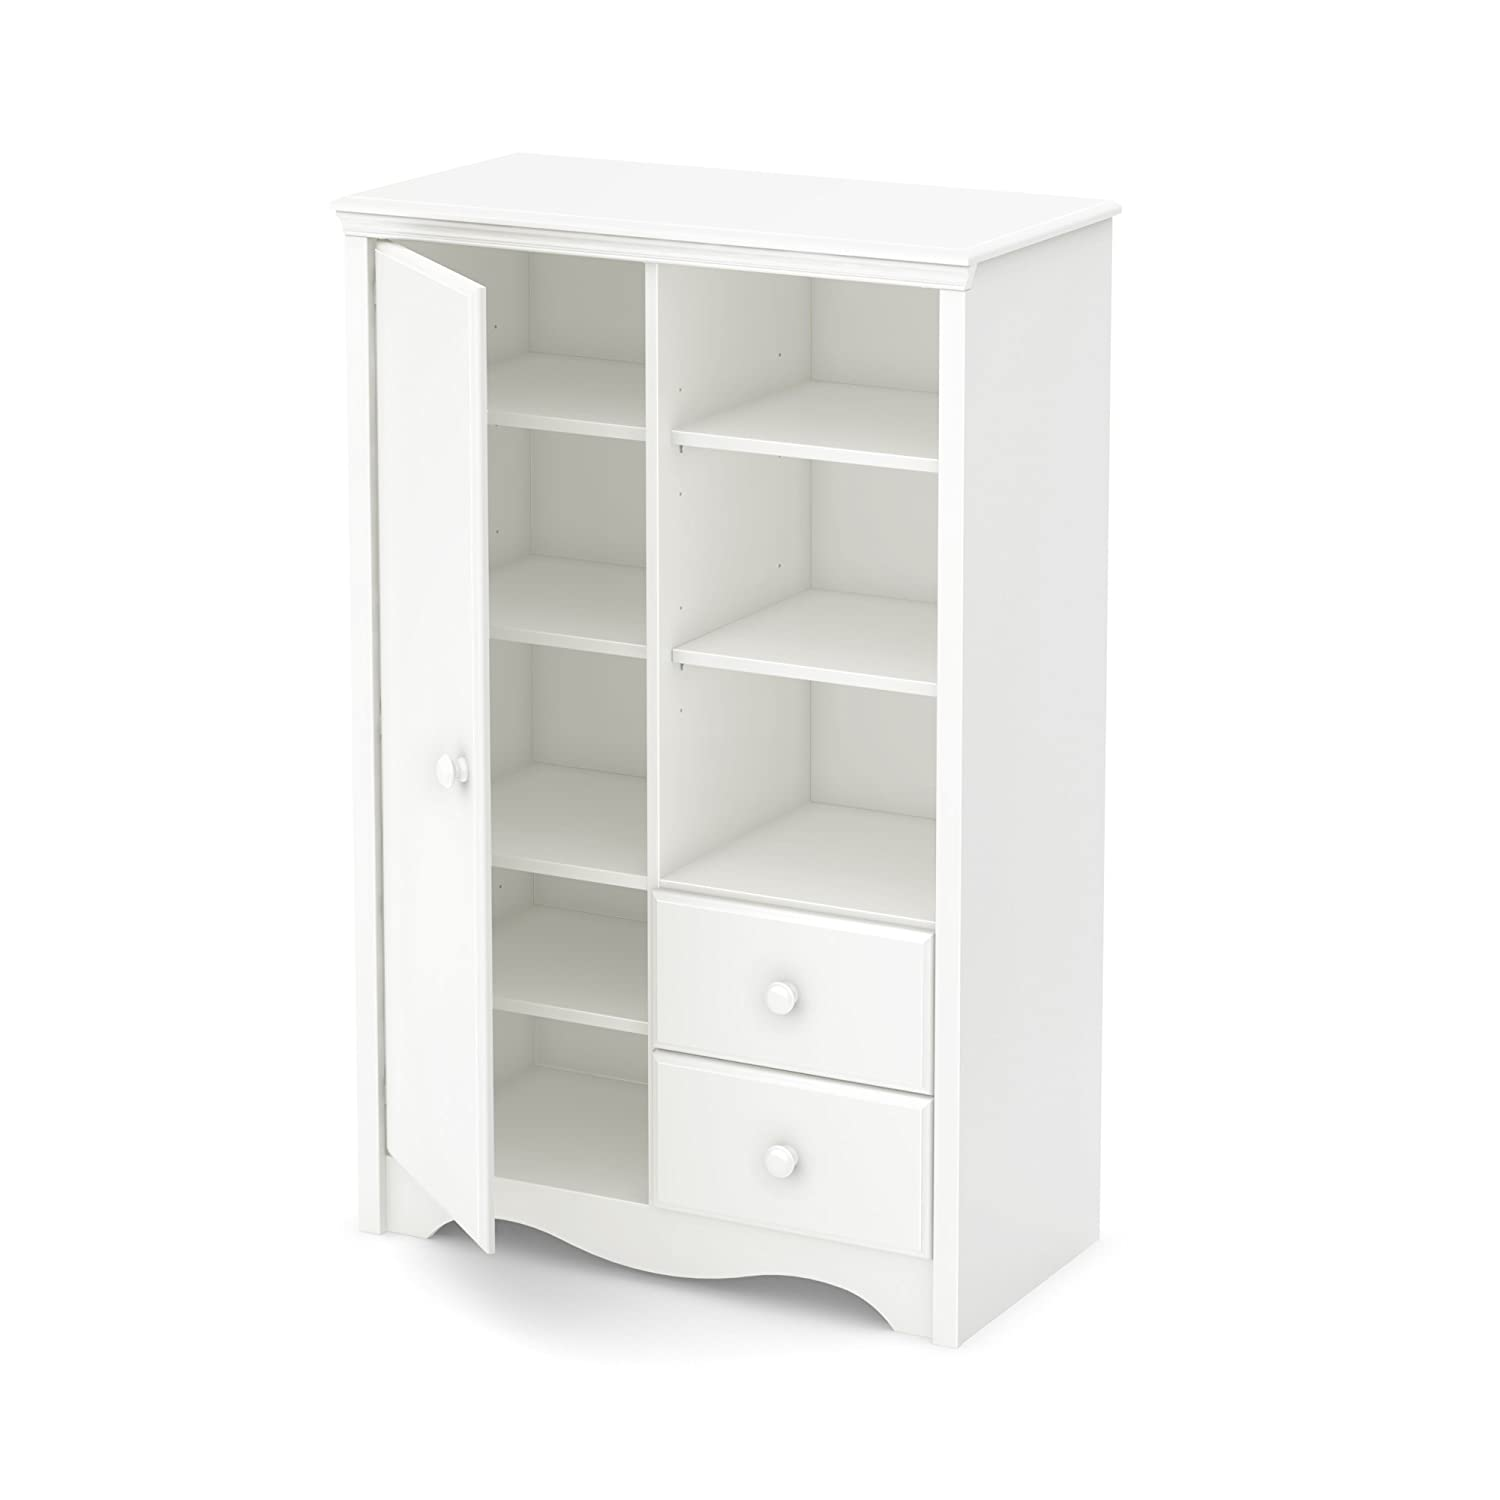 South Shore Furniture Heavenly Armoire with Drawers, Pure White 3680038